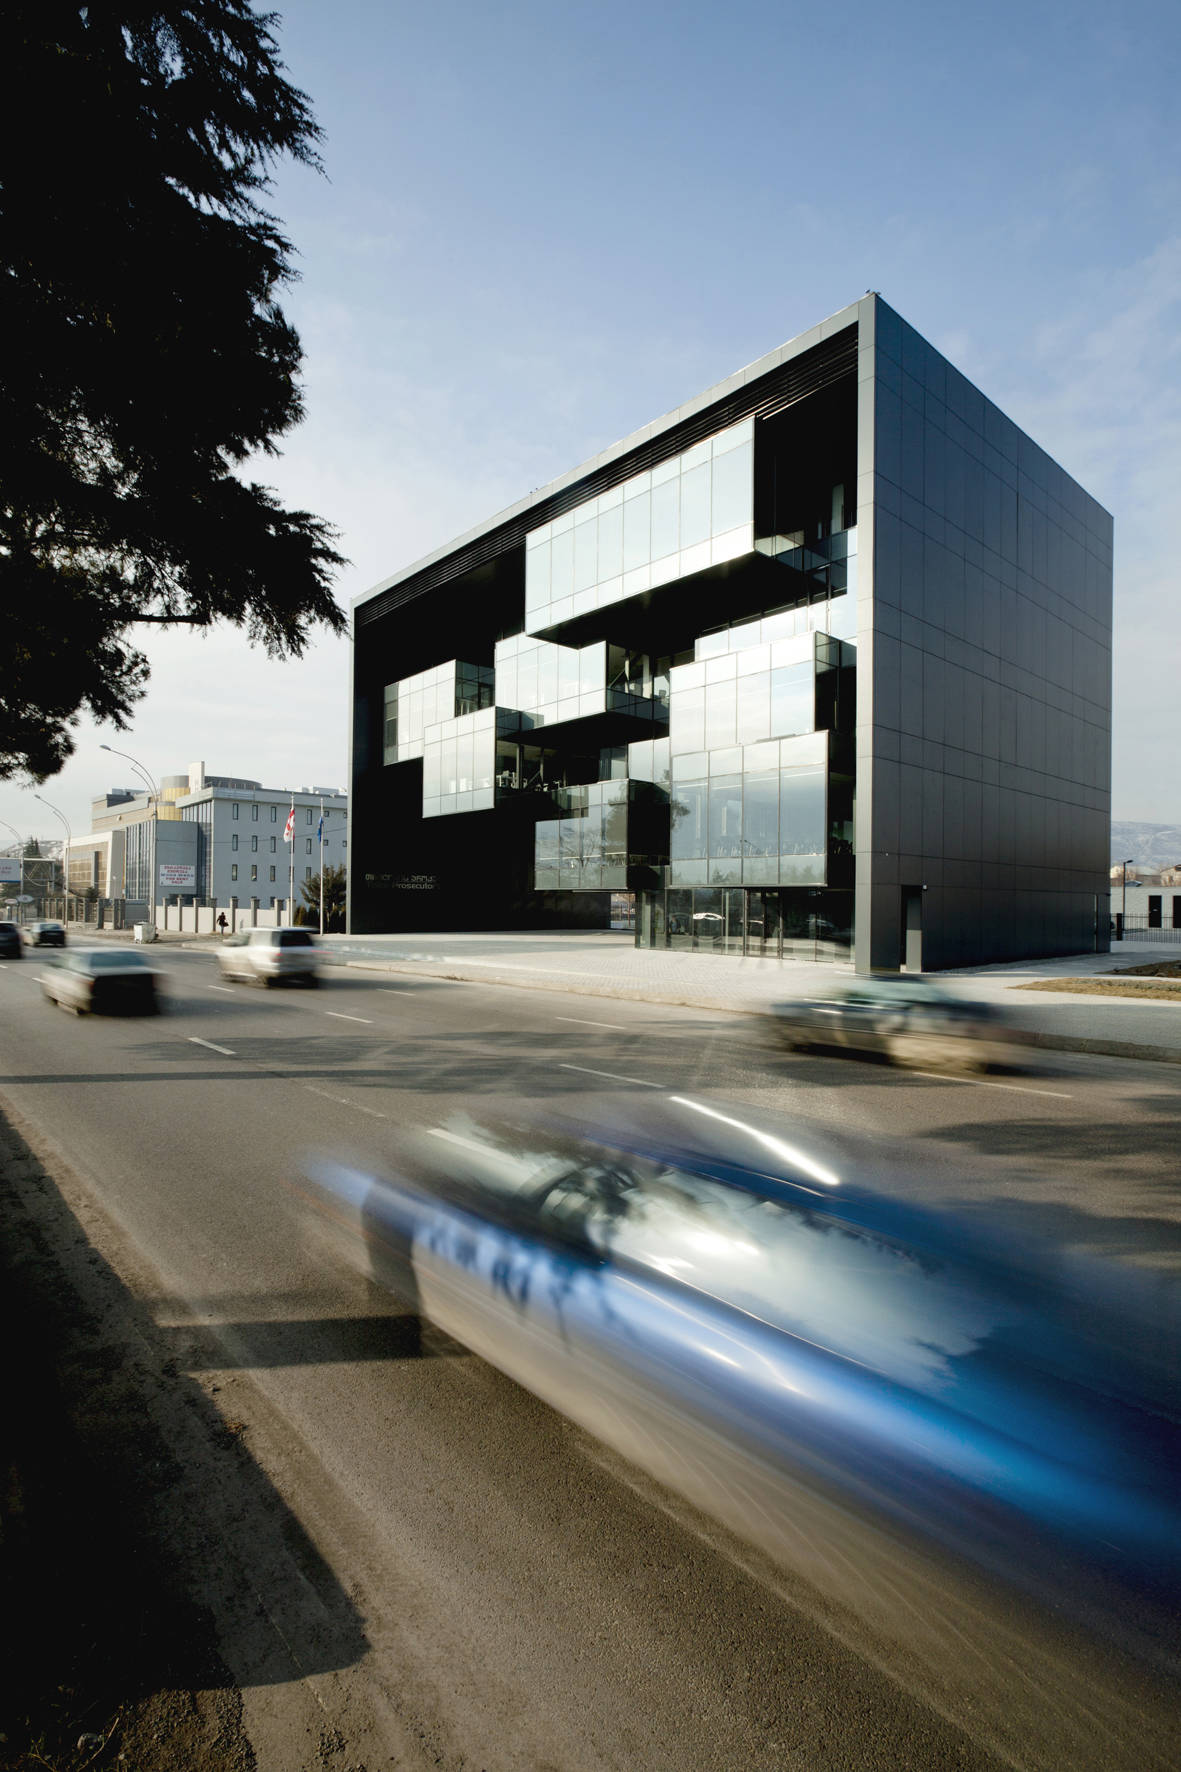 Tbilisi Prosecutors Office by Architects of Invention